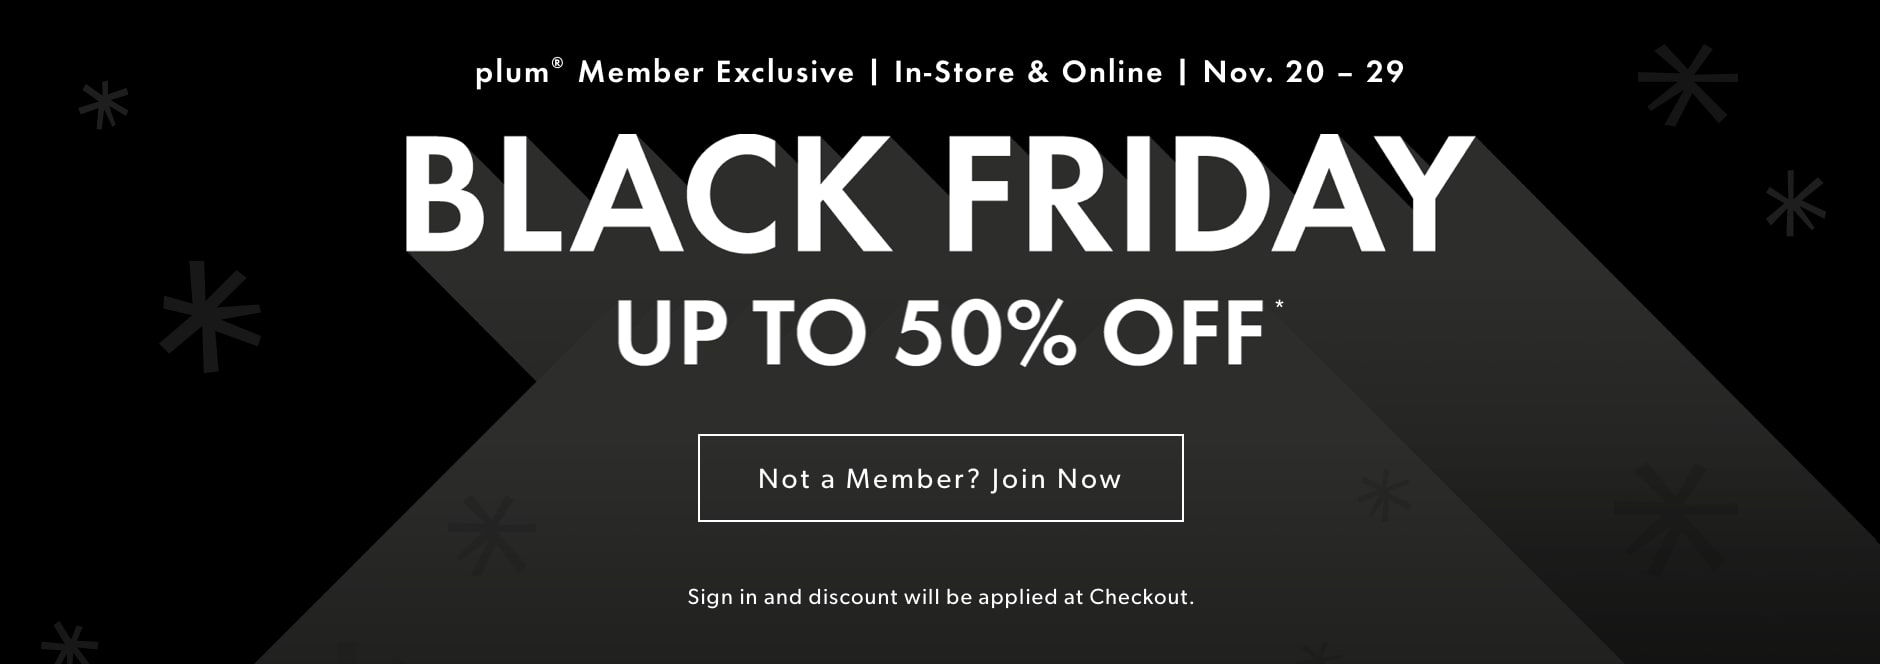 Black Friday: plum member excludive